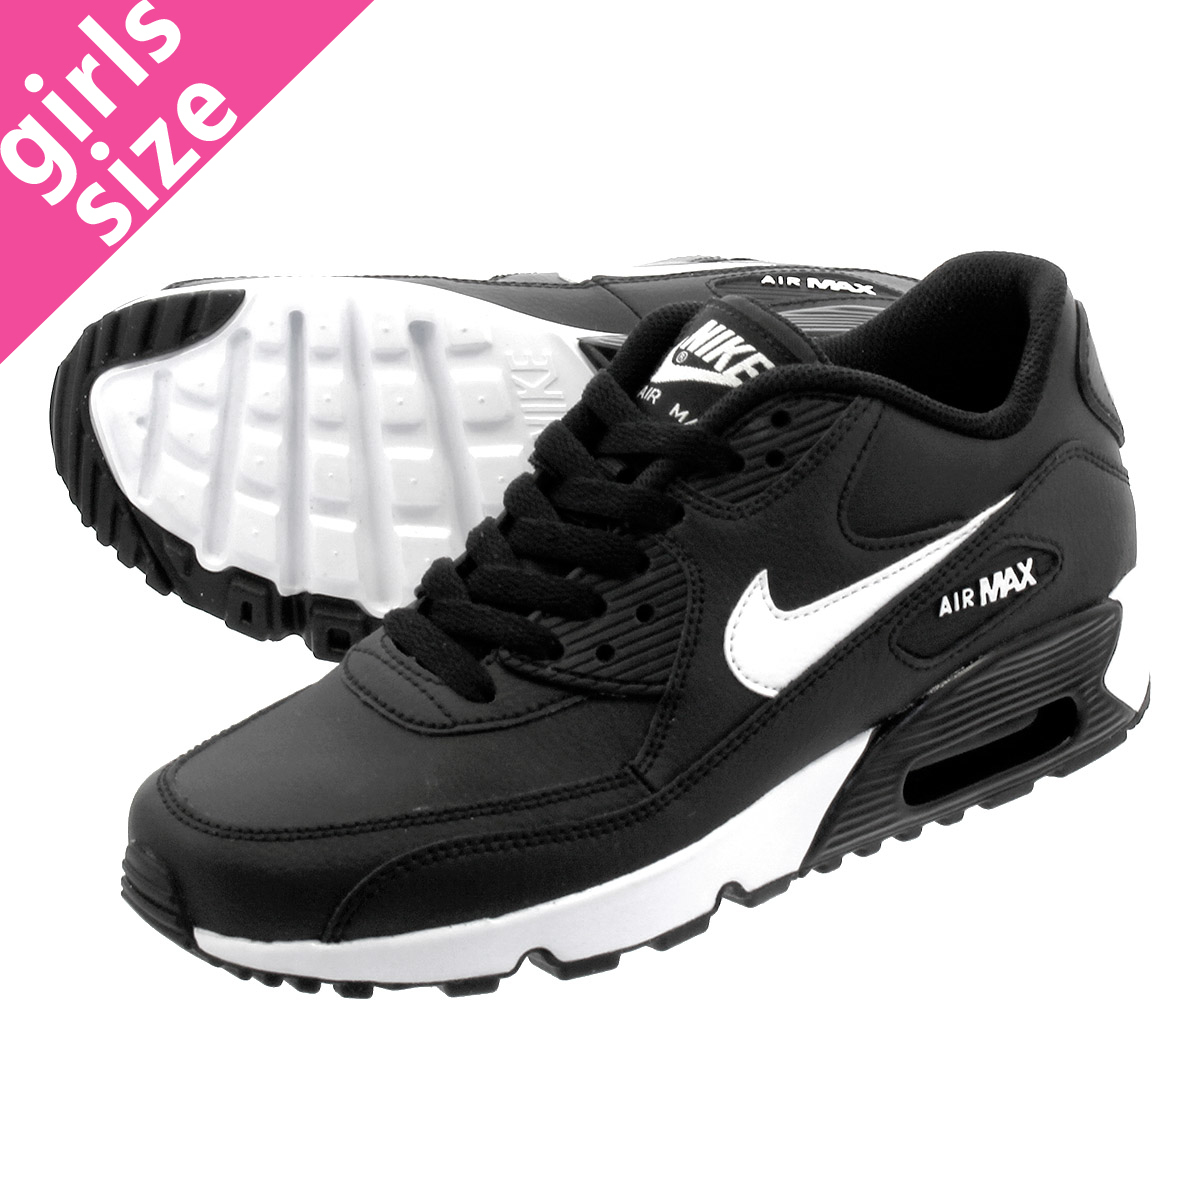 best sneakers 4abf6 5e86a NIKE AIR MAX 90 LTR GS Kie Ney AMAX 90 leather GS BLACK WHITE 833,412-025